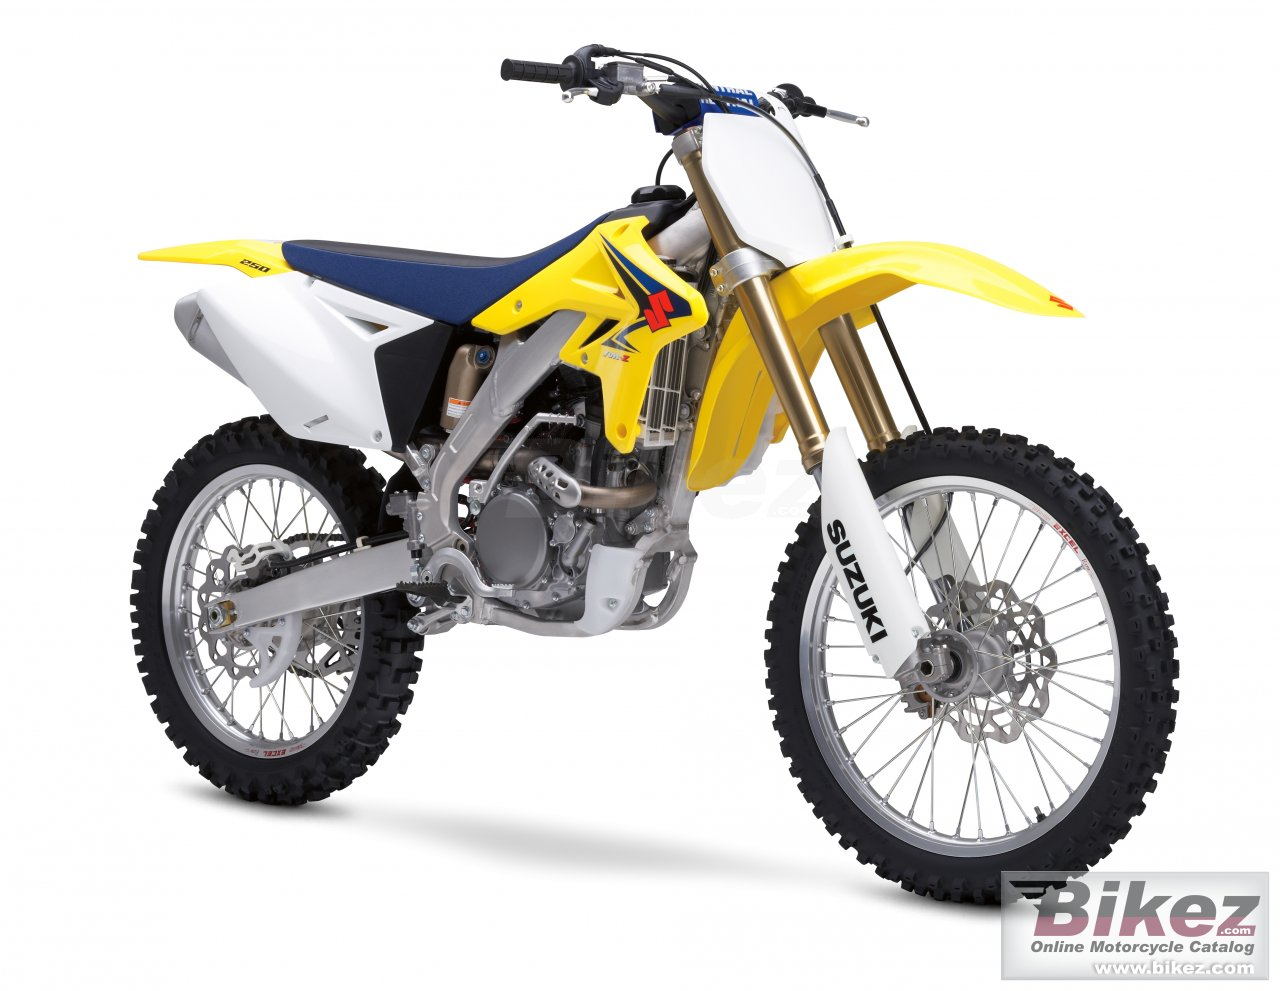 Big Suzuki rm-z250 picture and wallpaper from Bikez.com